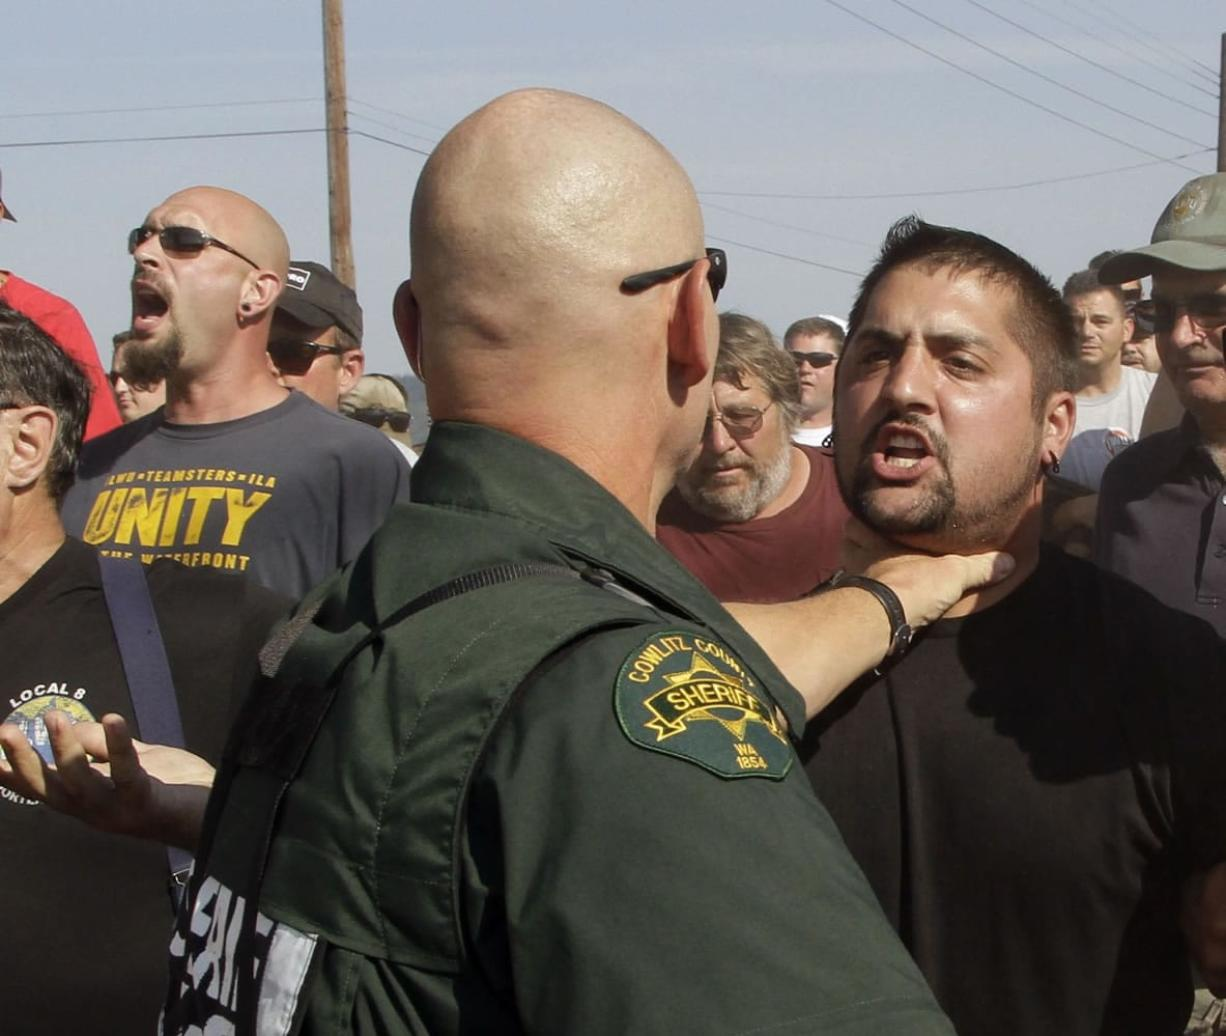 Union protesters clash with police in Longview - Columbian com